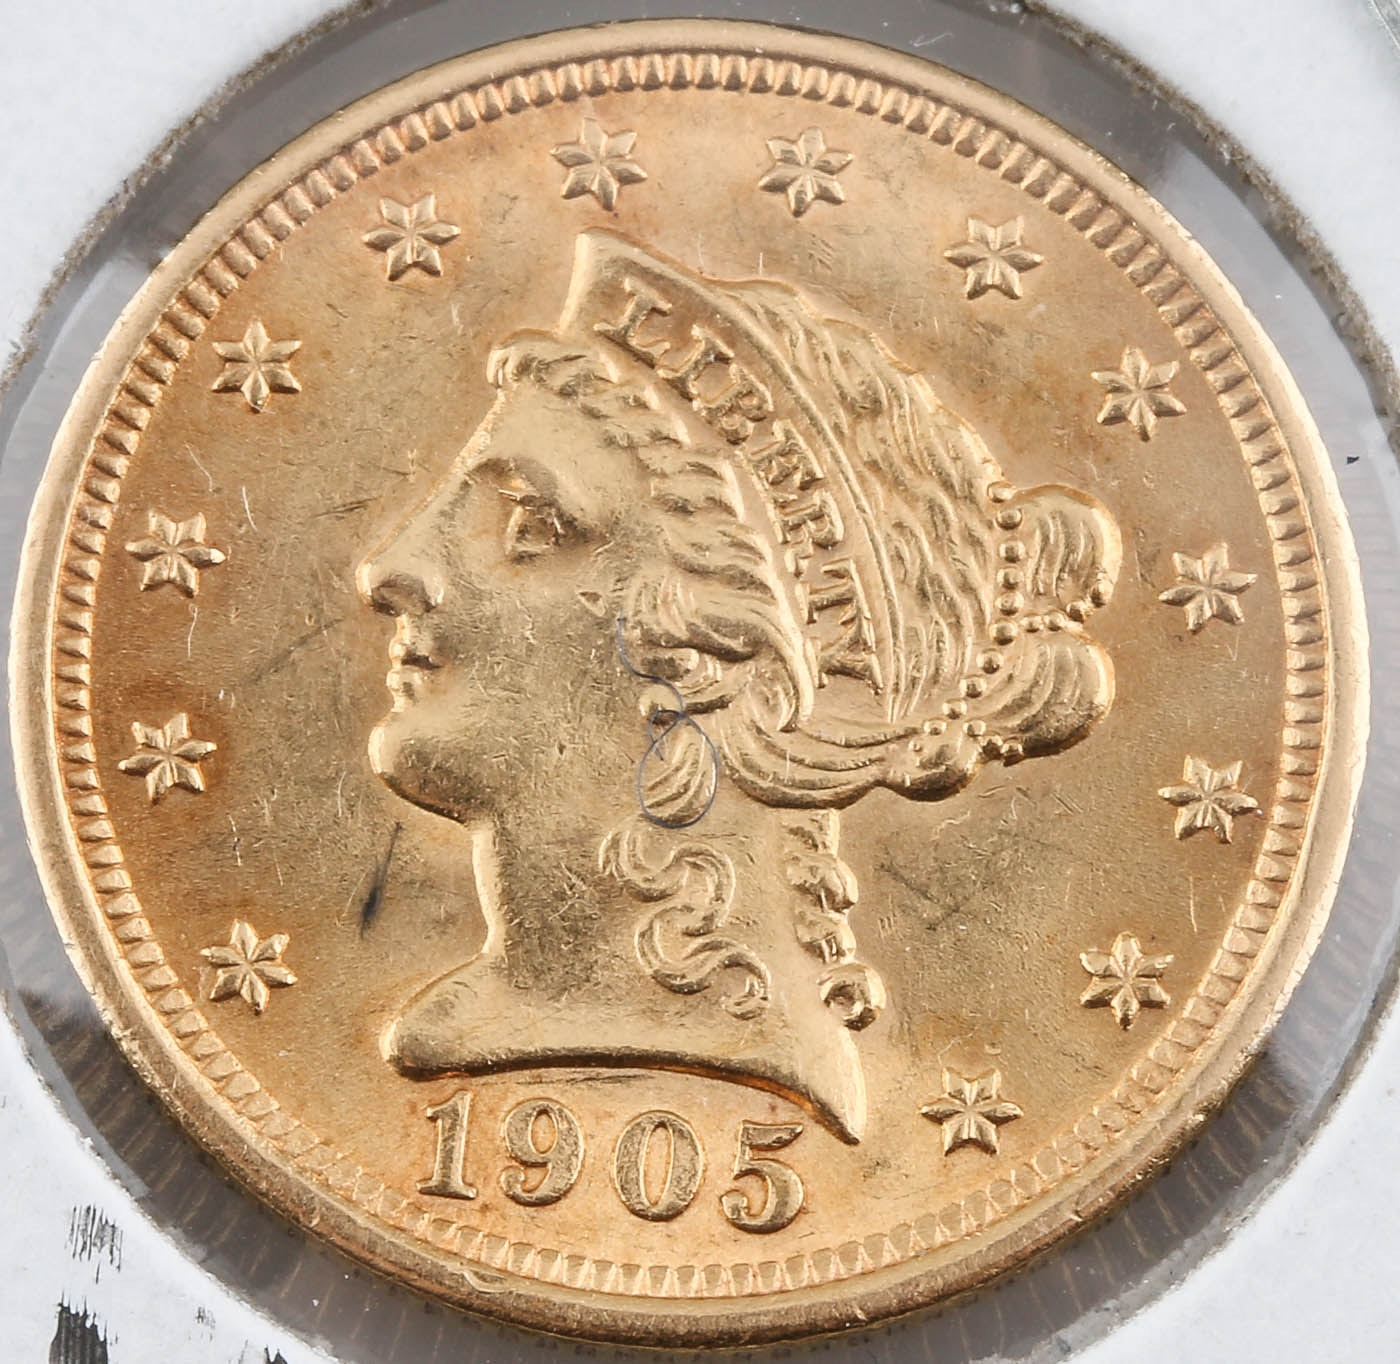 1905 Liberty Head $2 1/2 Gold Coin